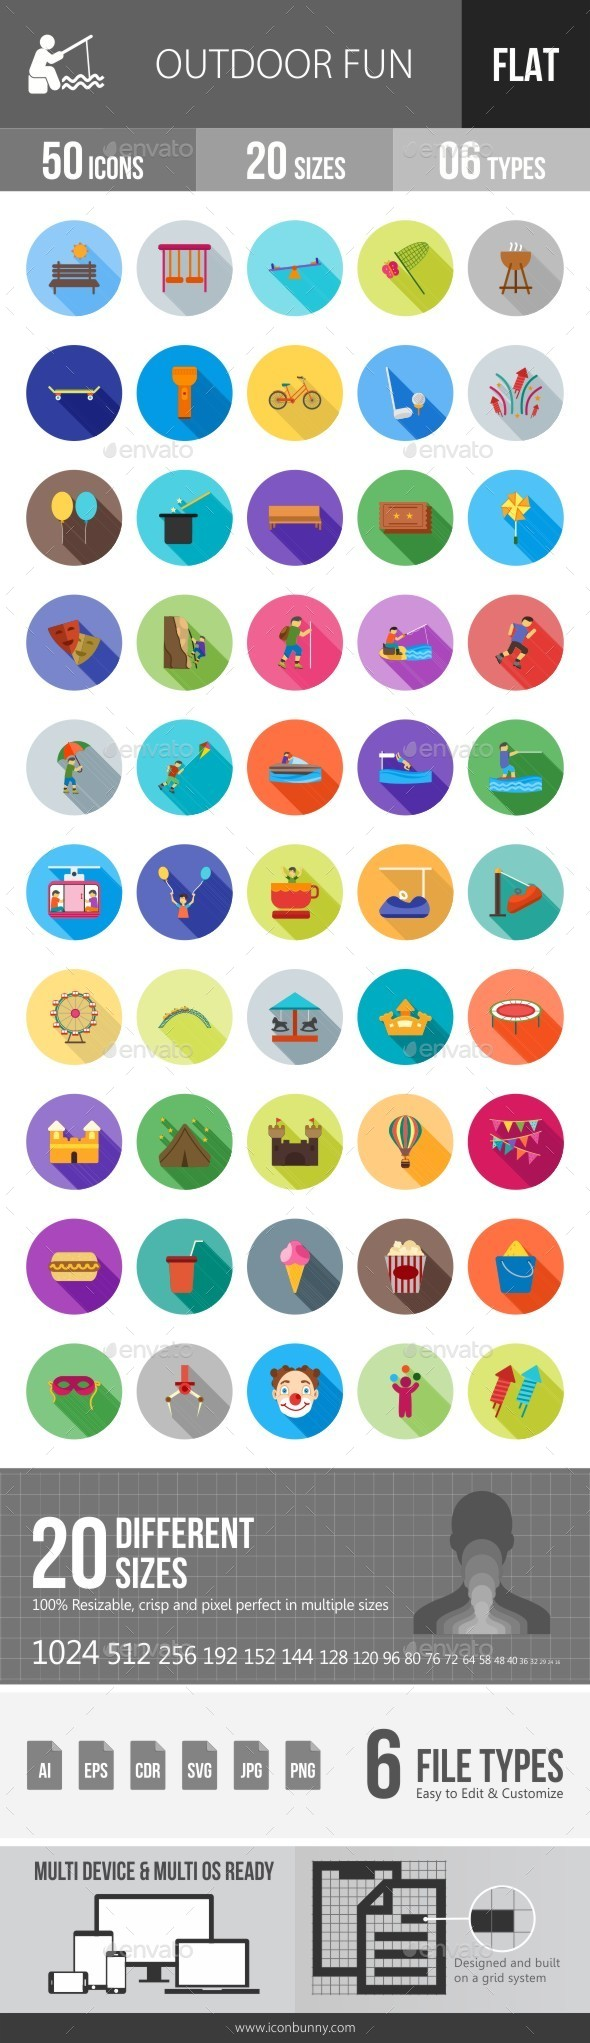 Outdoor Fun Flat Shadowed Icons - Icons